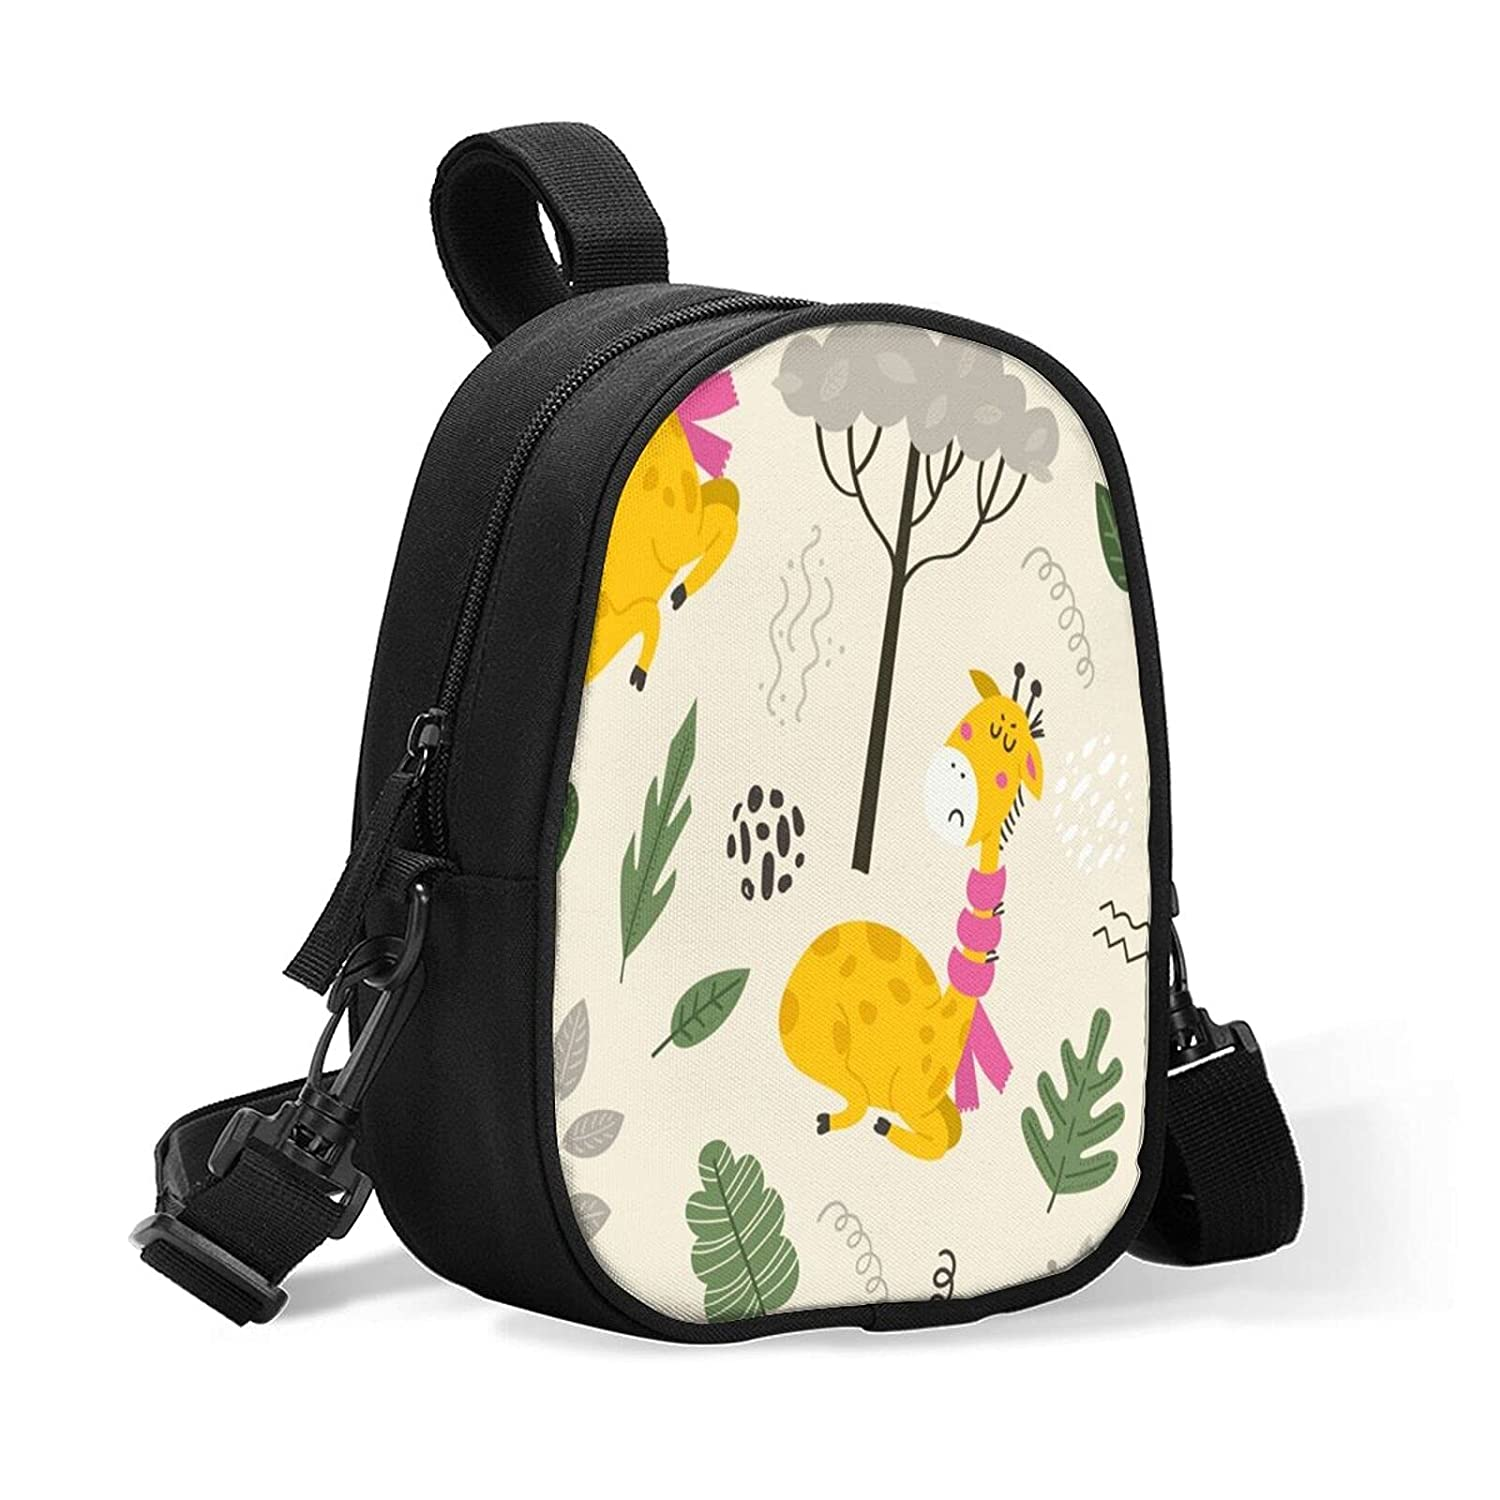 Cute Giraffes Doodle Insulated Baby Daycare New item for Memphis Mall Bottle Size Bag